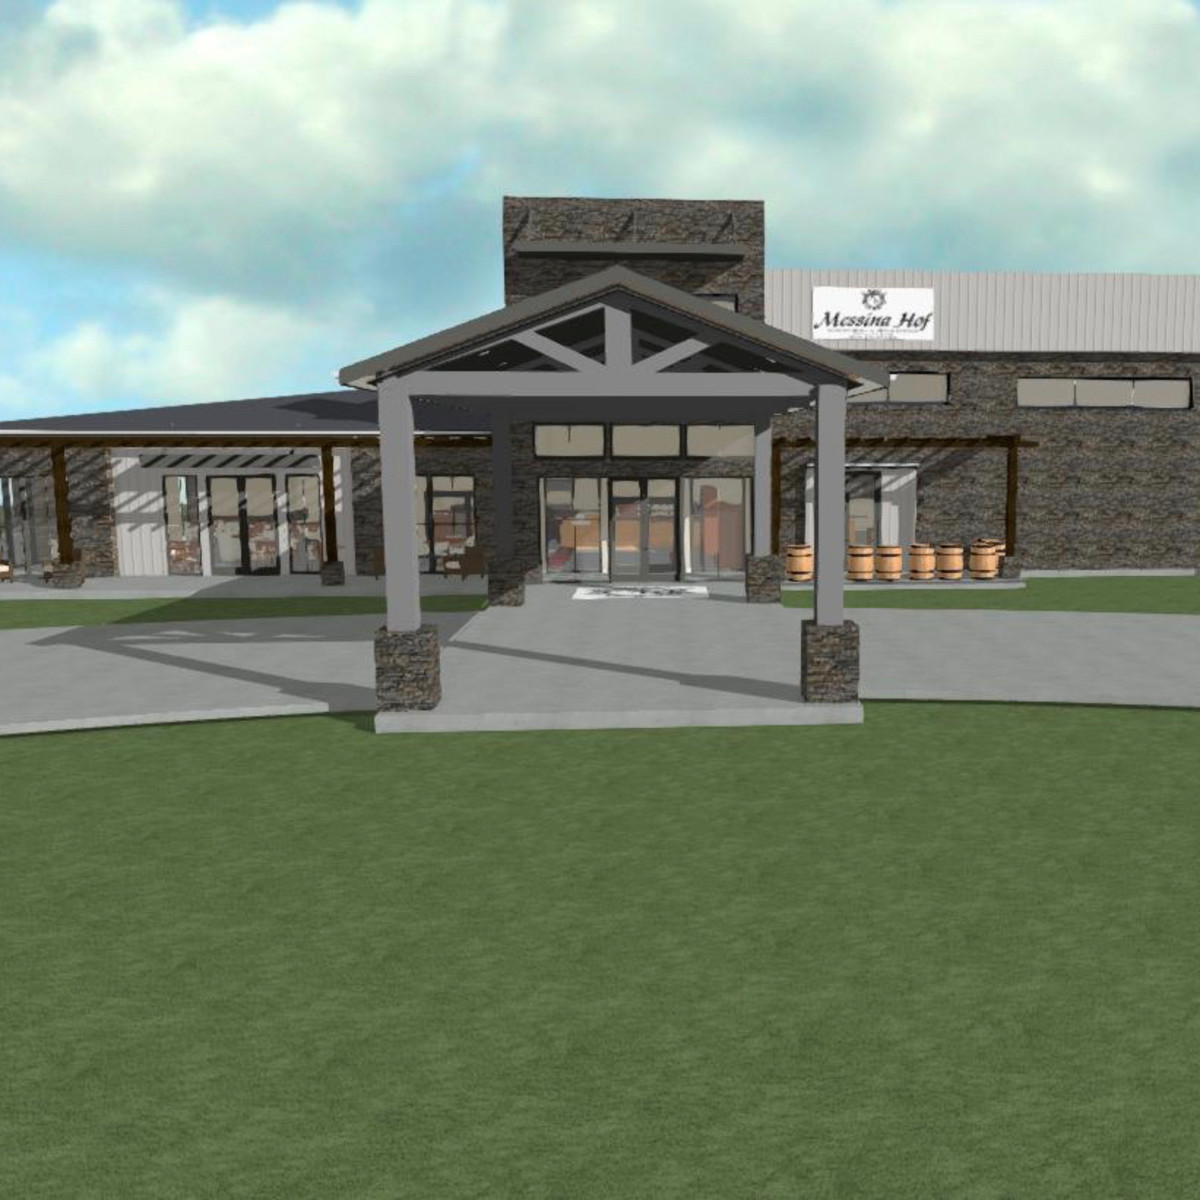 Messina Hof Harvest Green winery rendering